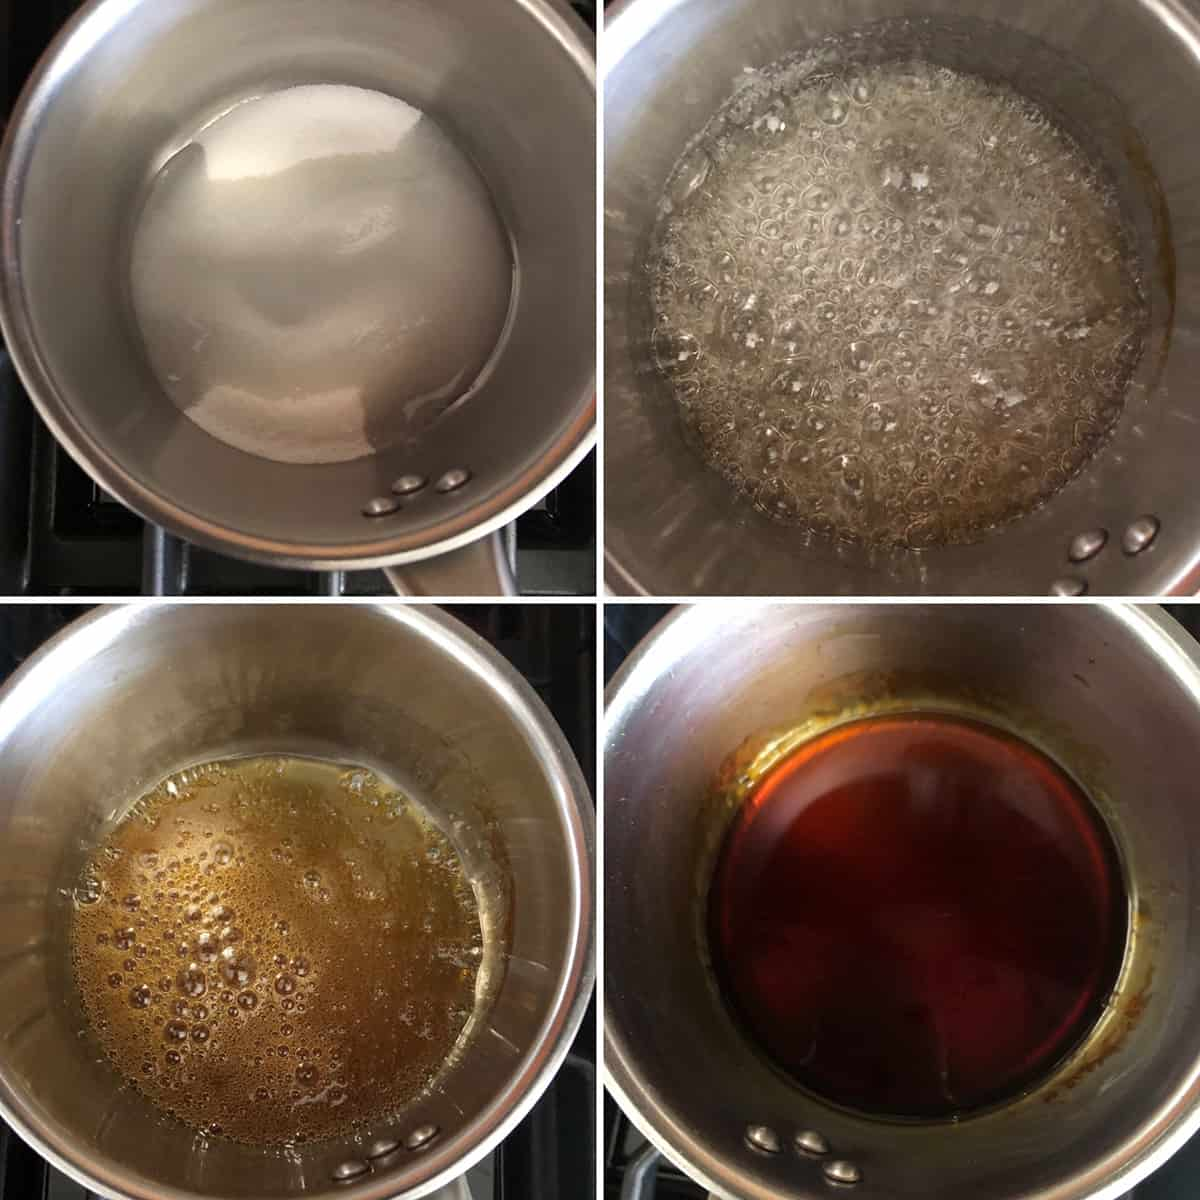 Step by step photos showing the making of caramel sauce